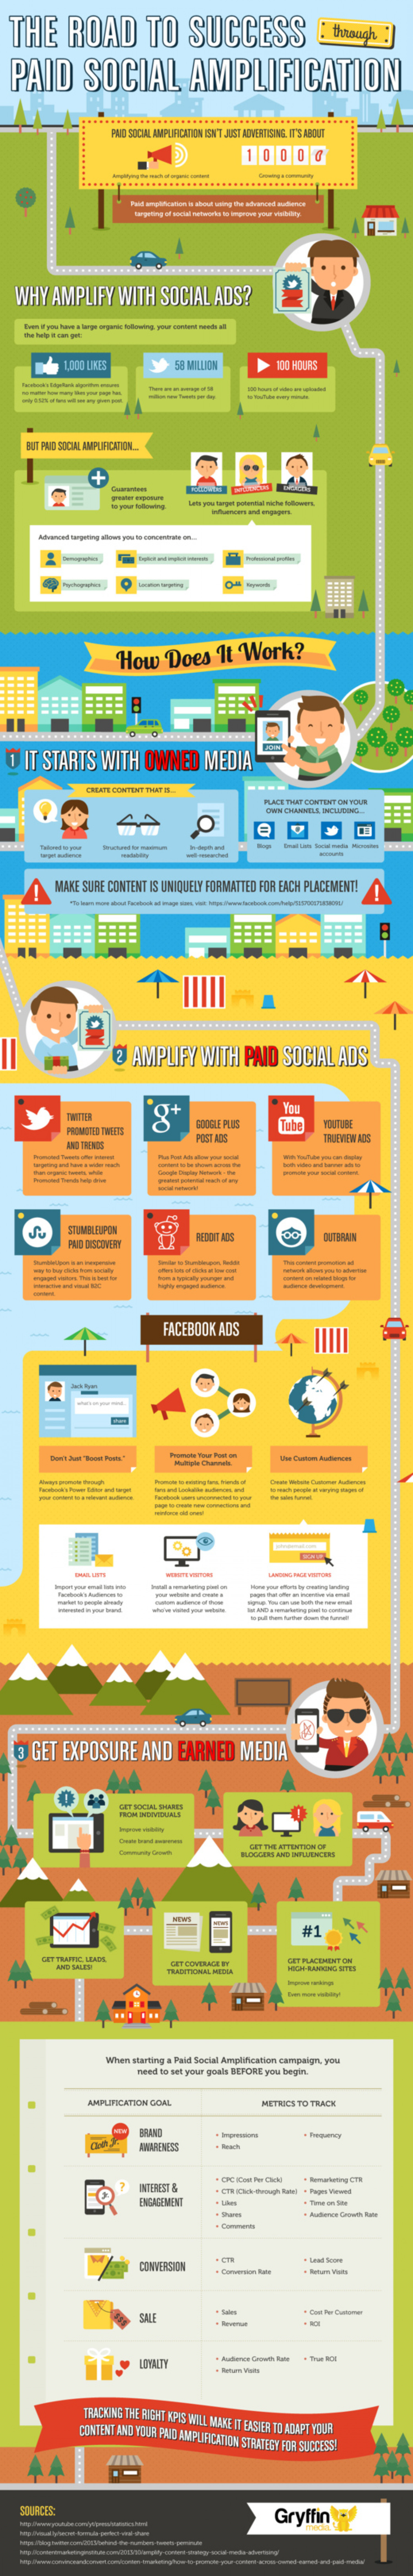 Paid Social Amplification Infographic